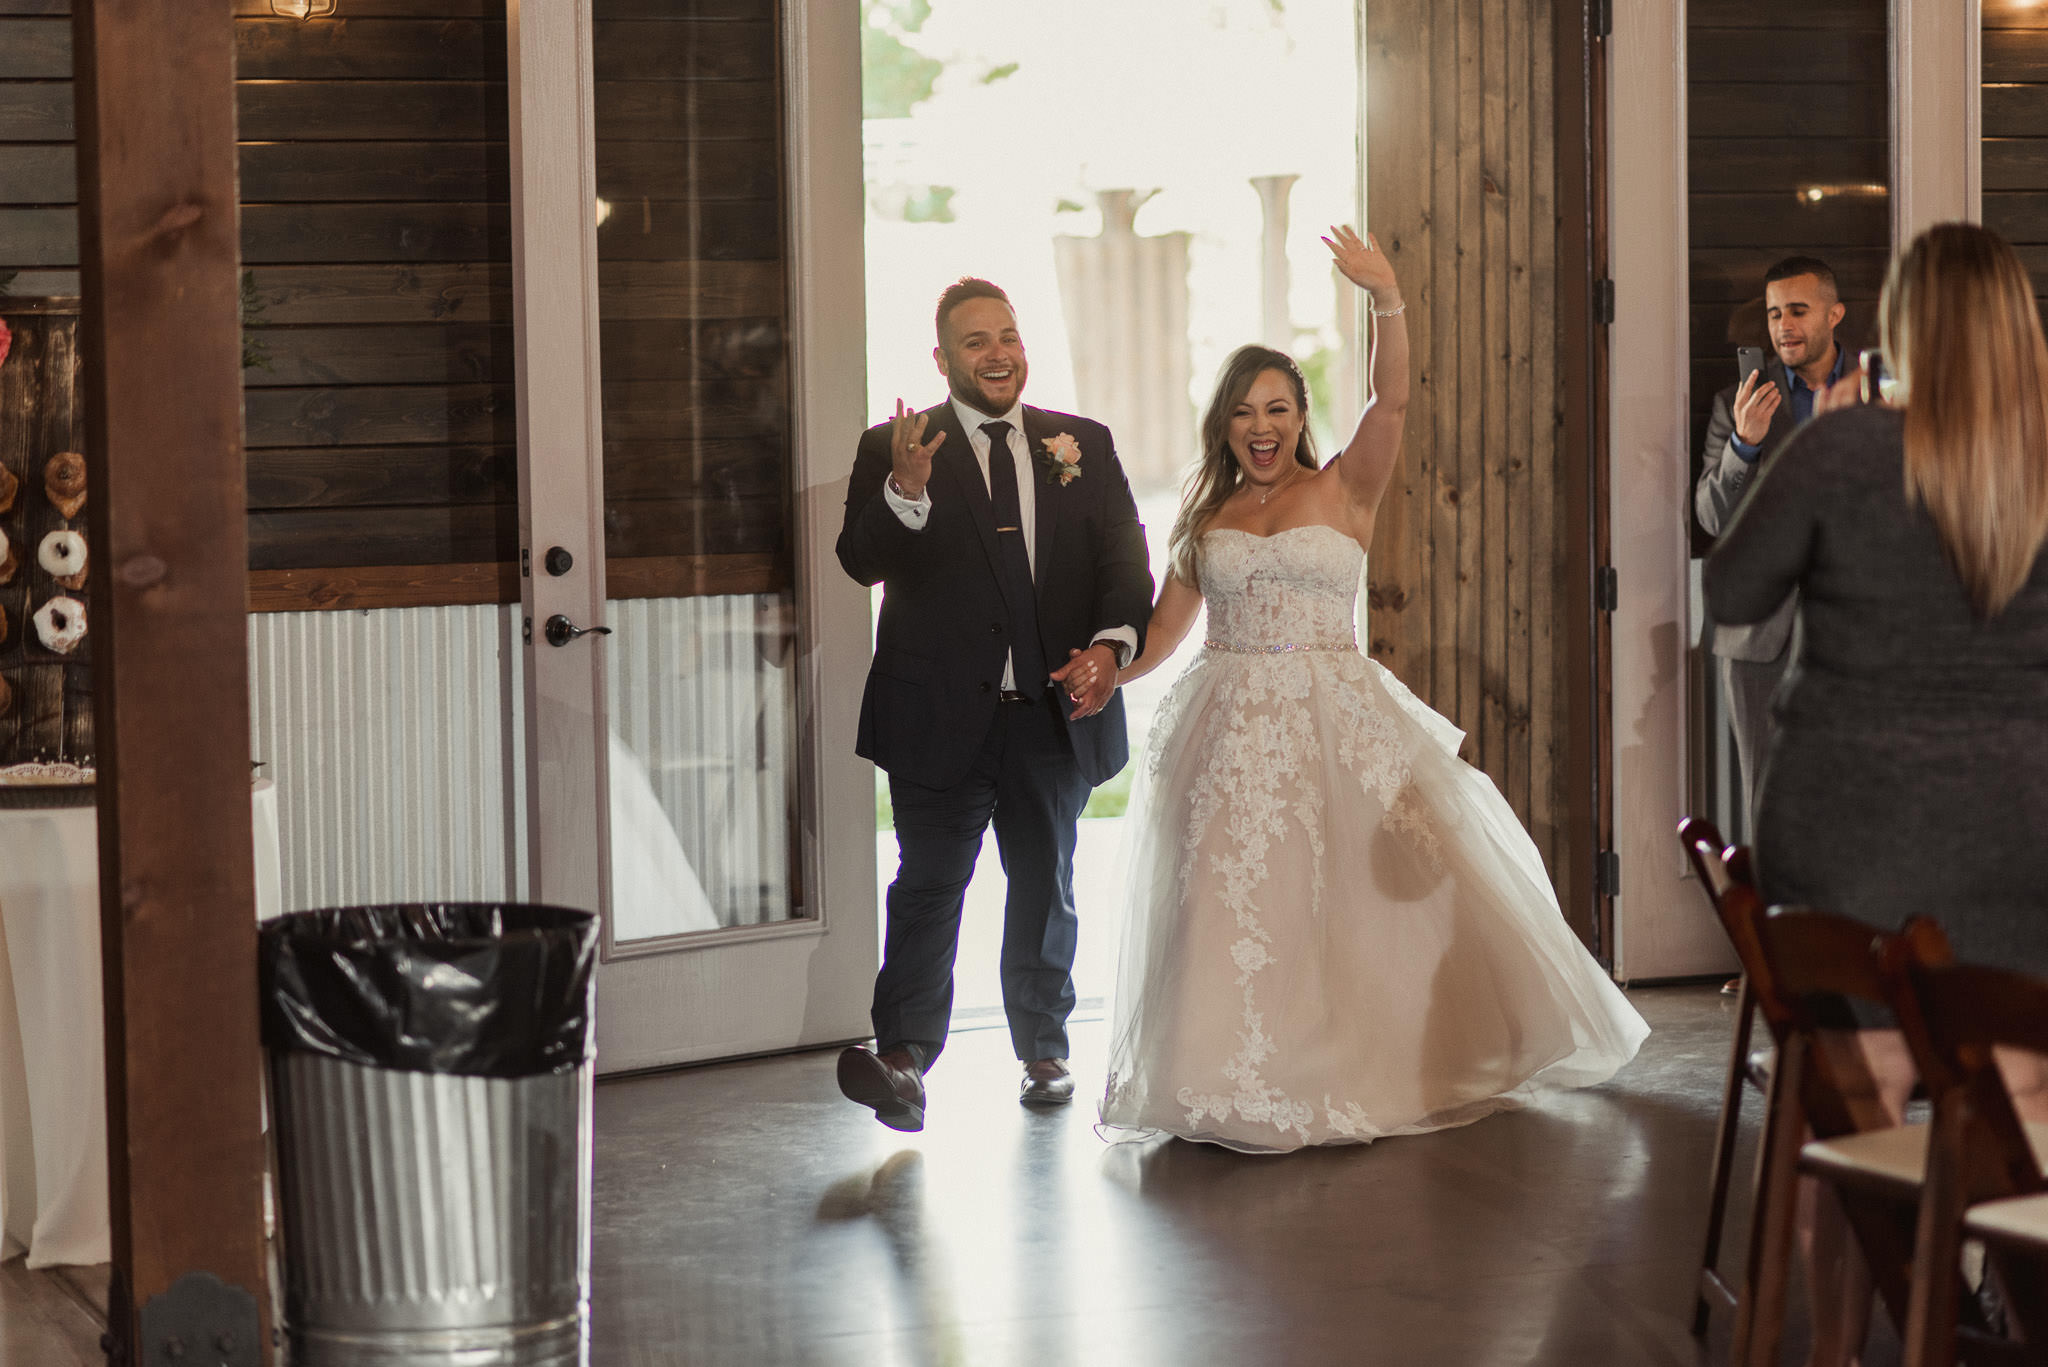 stephanie-gabe-peach-creek-ranch-wedding-college-station-houston-photographer-100.jpg